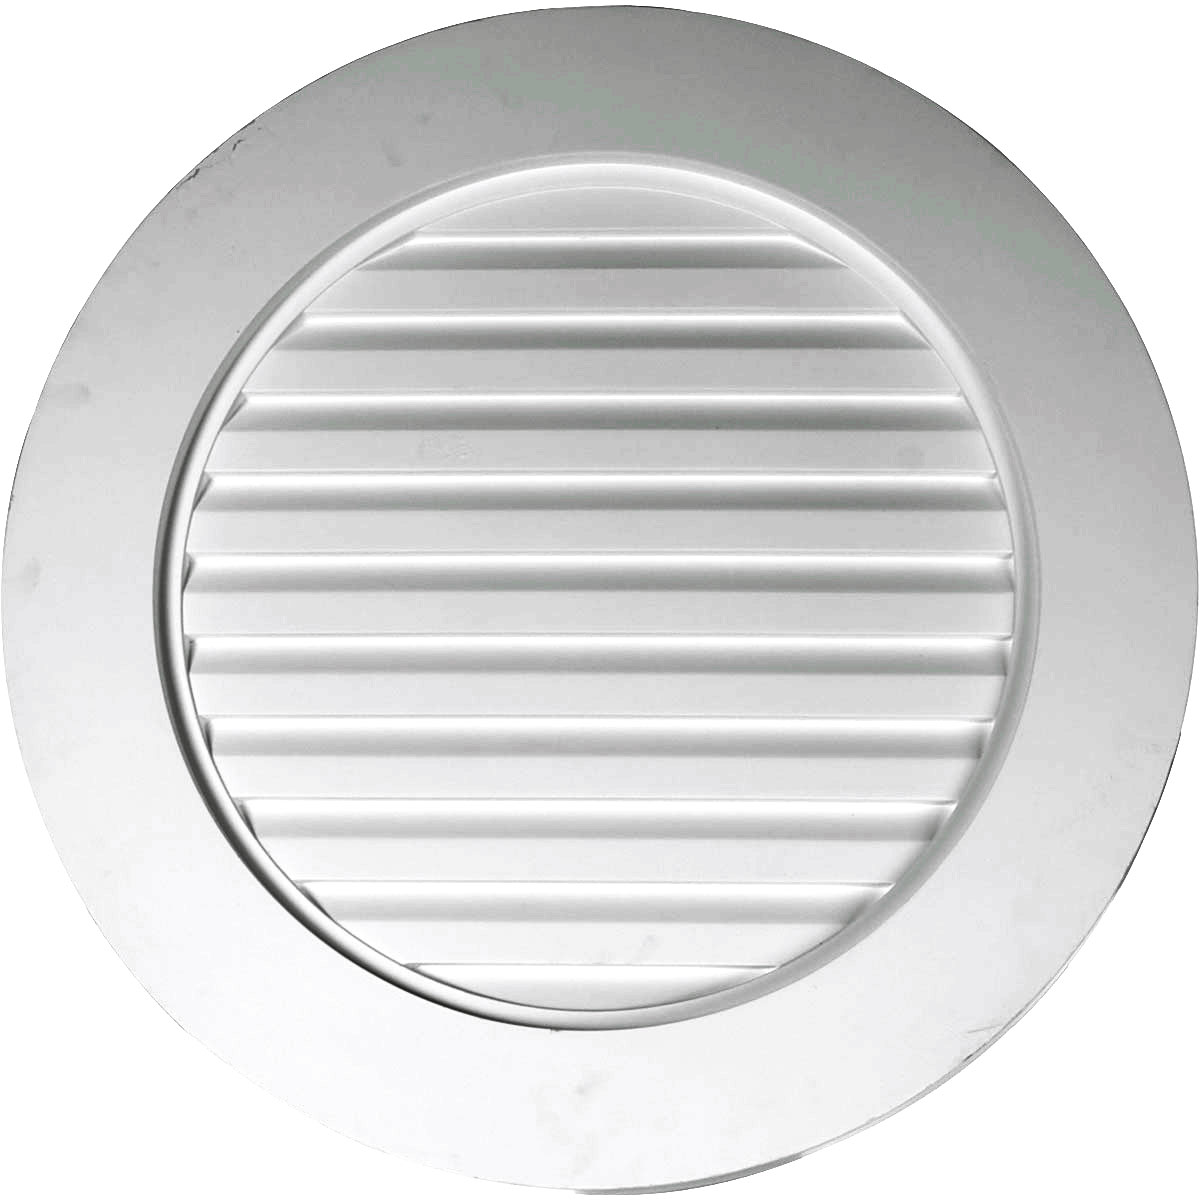 "27""W x 27""H x 1 5/8""P, Plain Round Gable Vent Louver, w/ Wide Trim, Non-Functional"